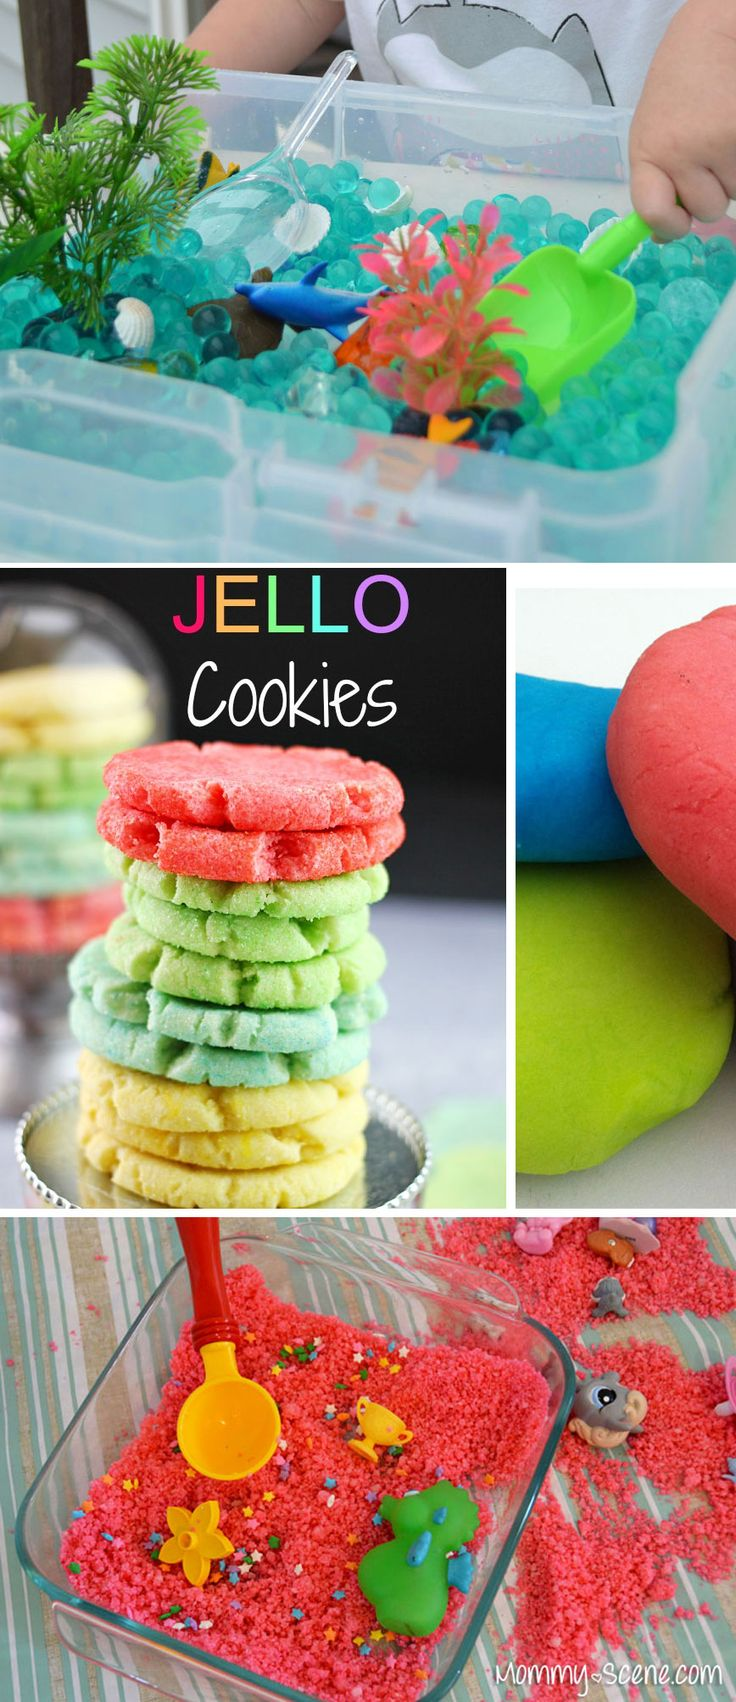 6 Fun Summer Kids Activities, water bead discovery boxes, Jello cookies, homemade sugar sand and more!